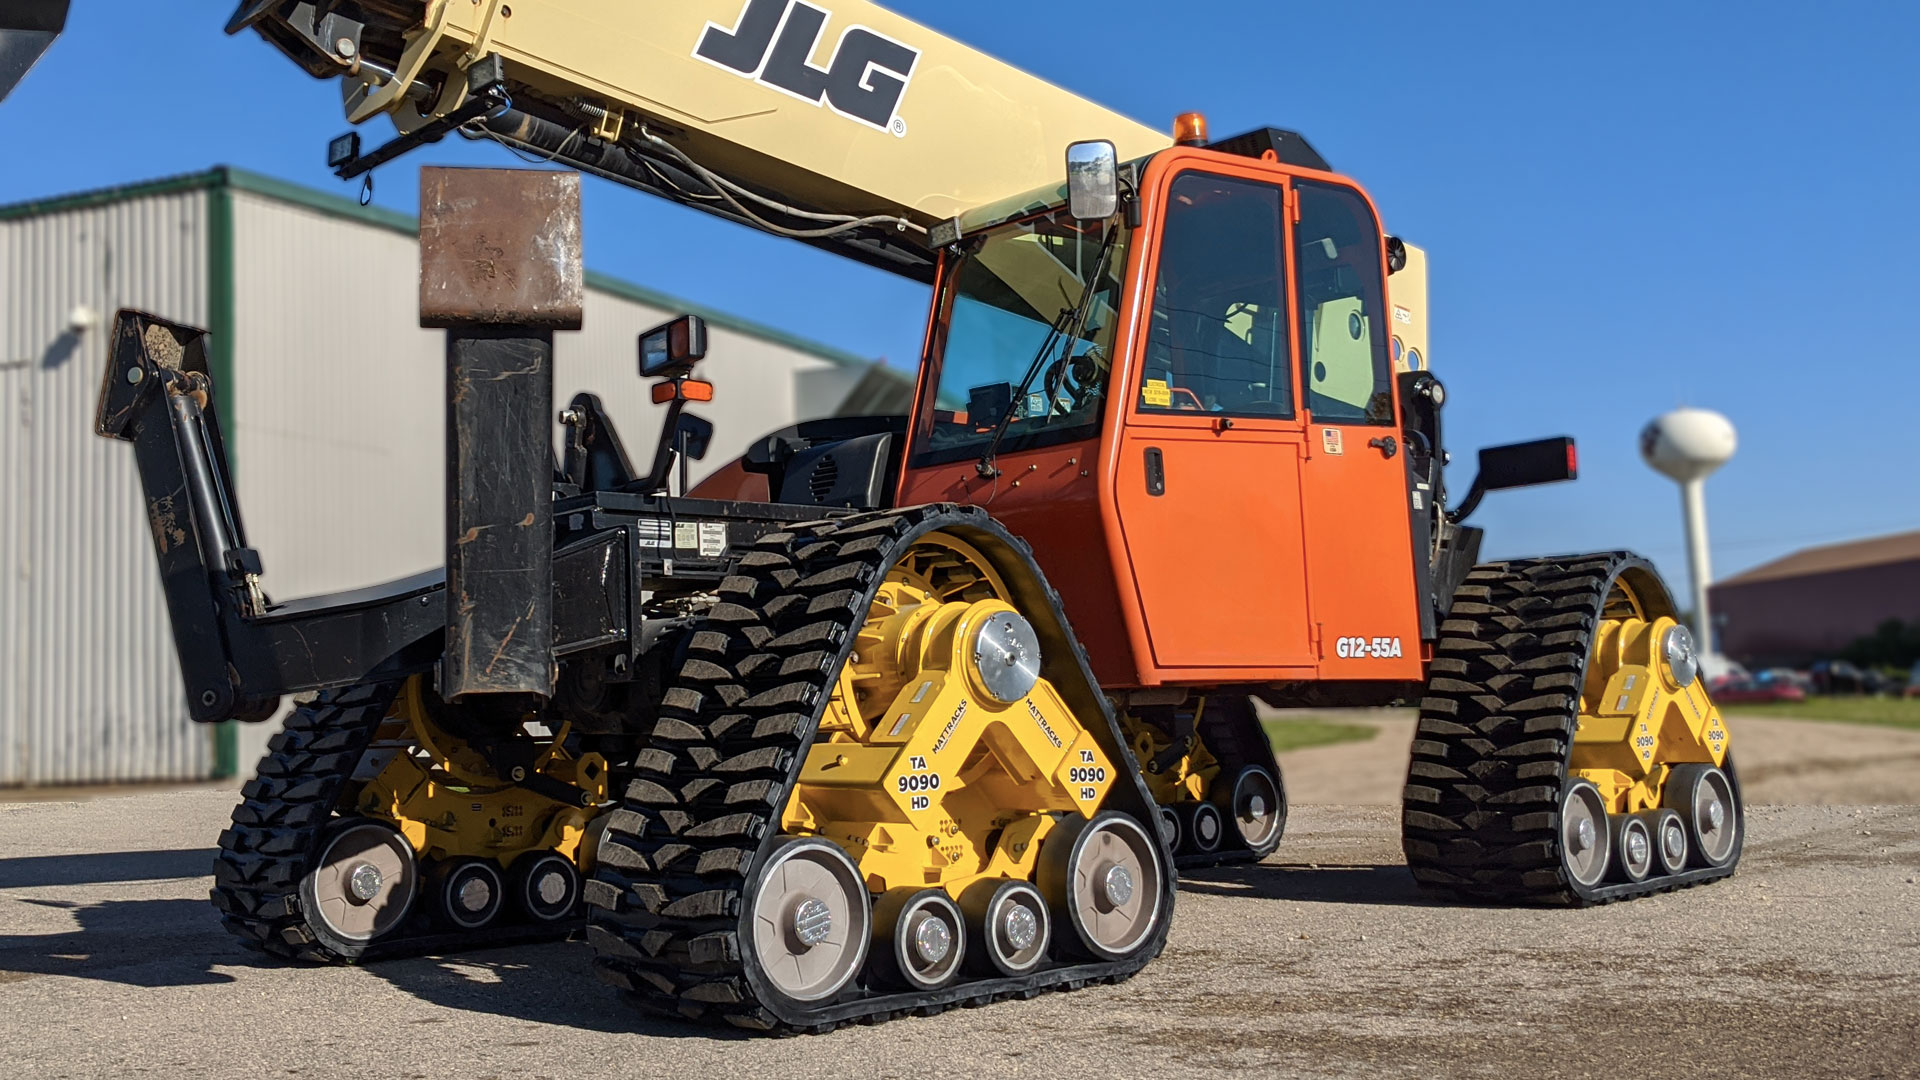 9090-RR Series Tracks on a JLG G12-55A Telehandler